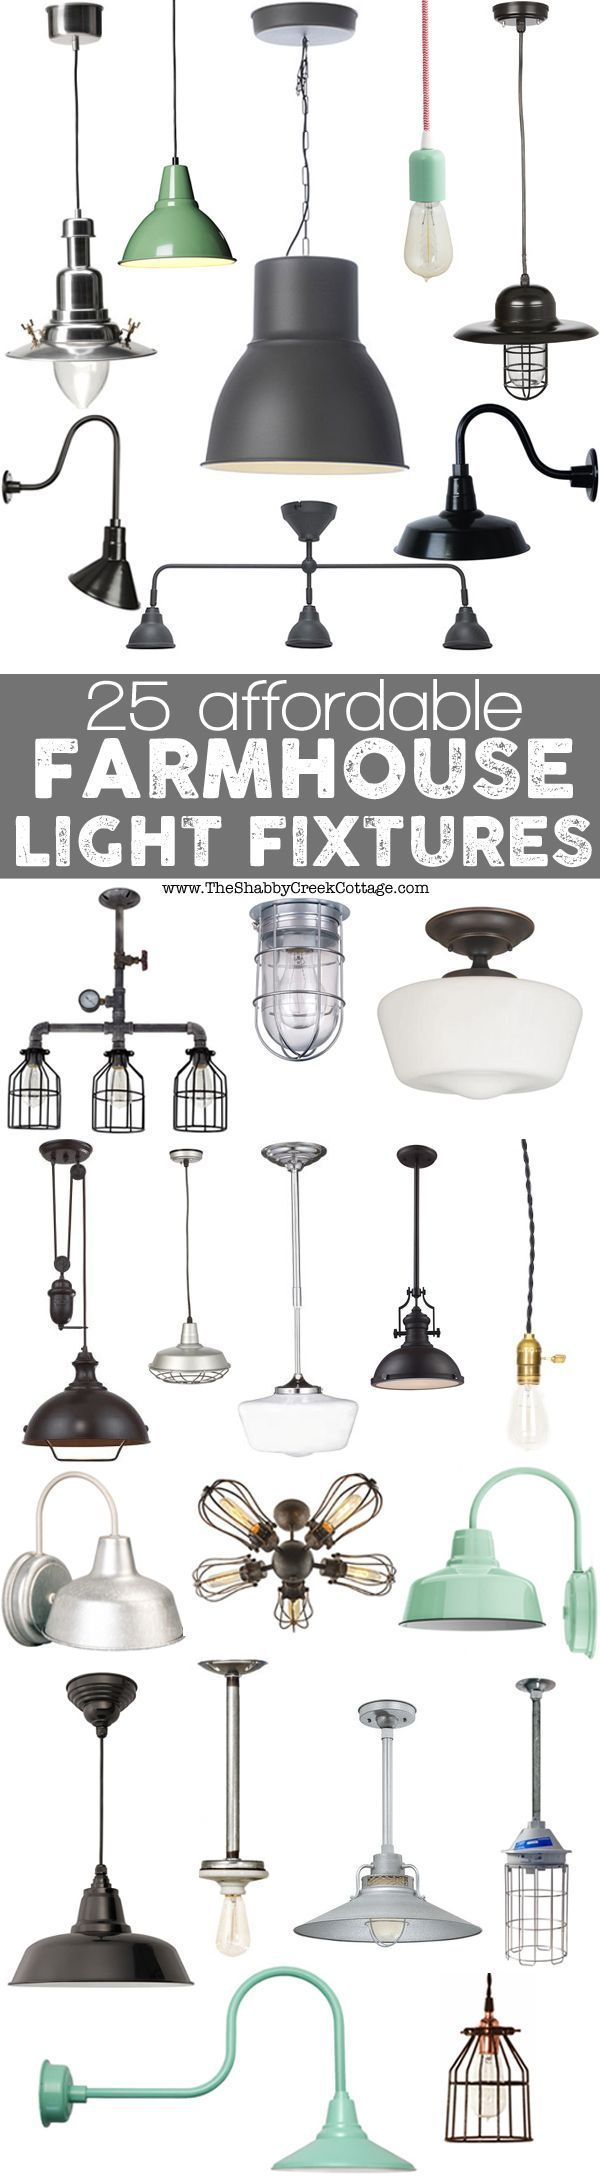 Farmhouse Lighting Ideas - 25 affordable fixtures that look like authentic vintage fixtures - via The Shabby Creek Cottage